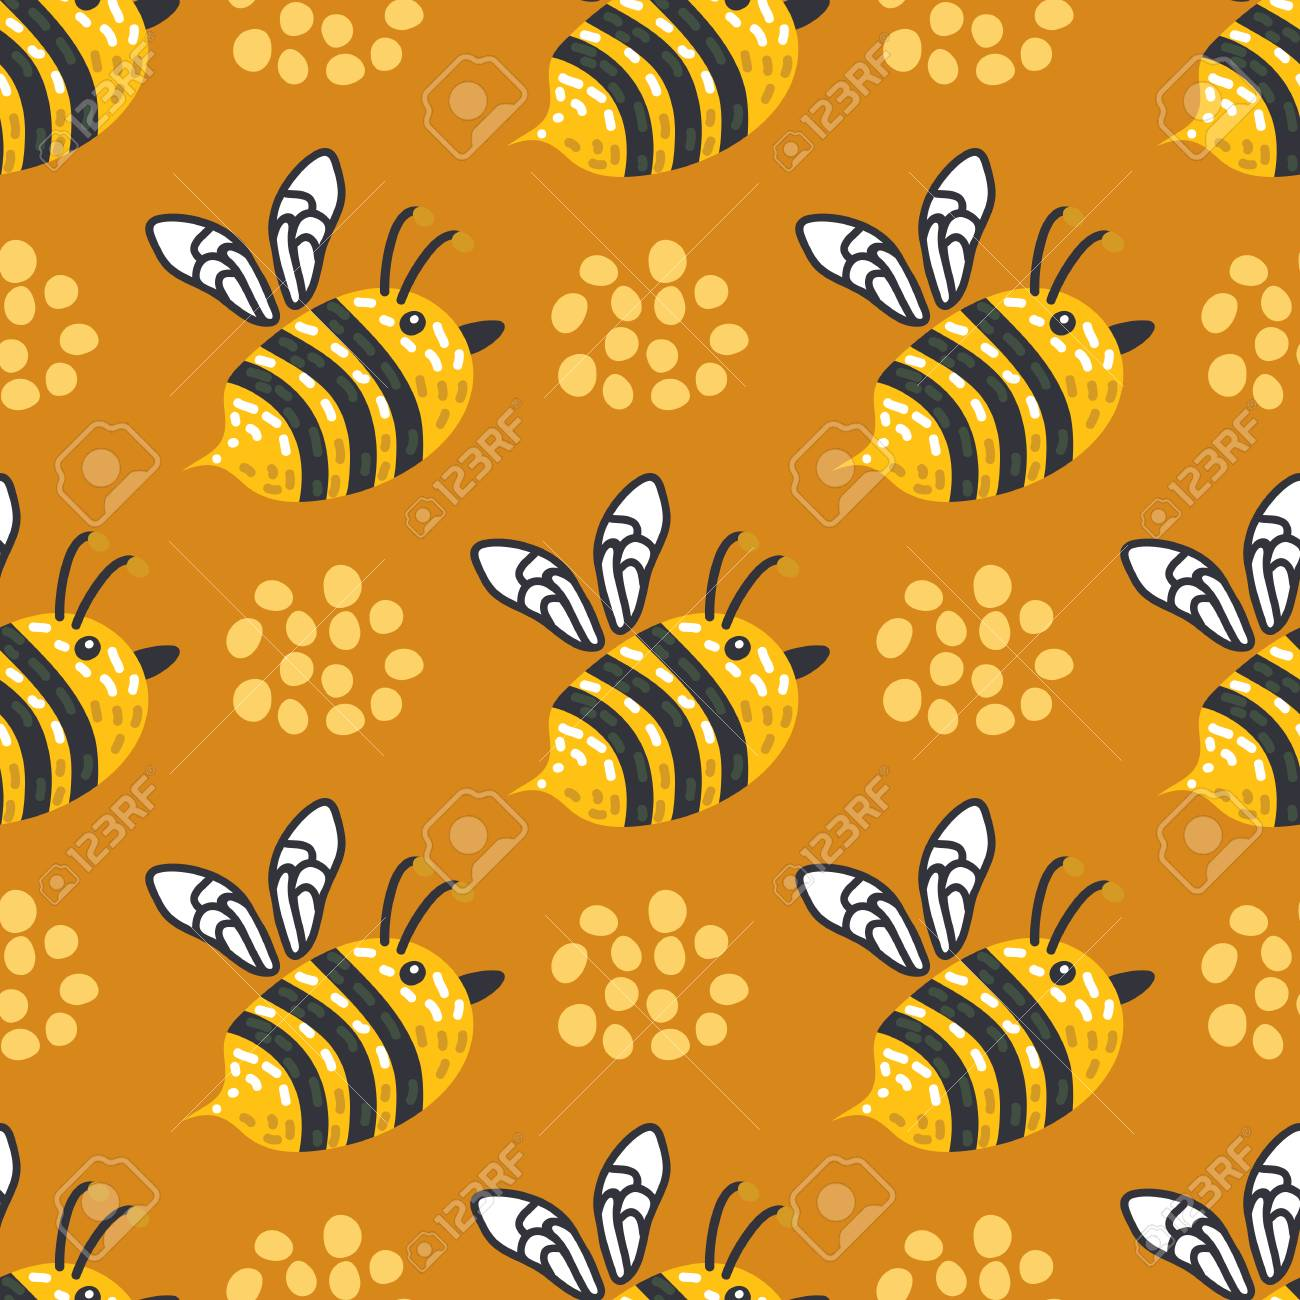 Seamless Pattern With Flowers And Honeybee Vector Illustration